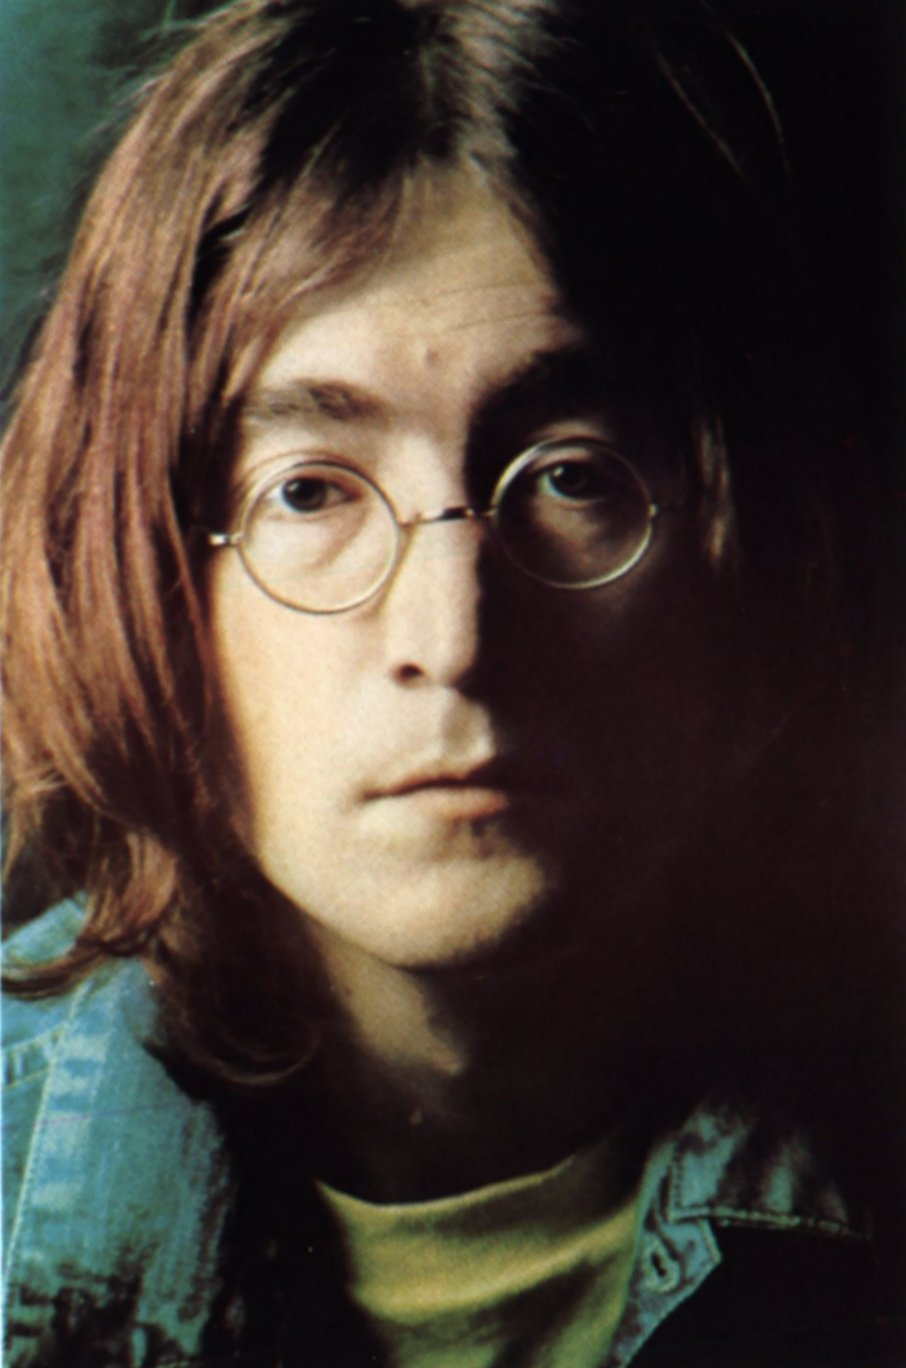 I Get A Check From John Lennon